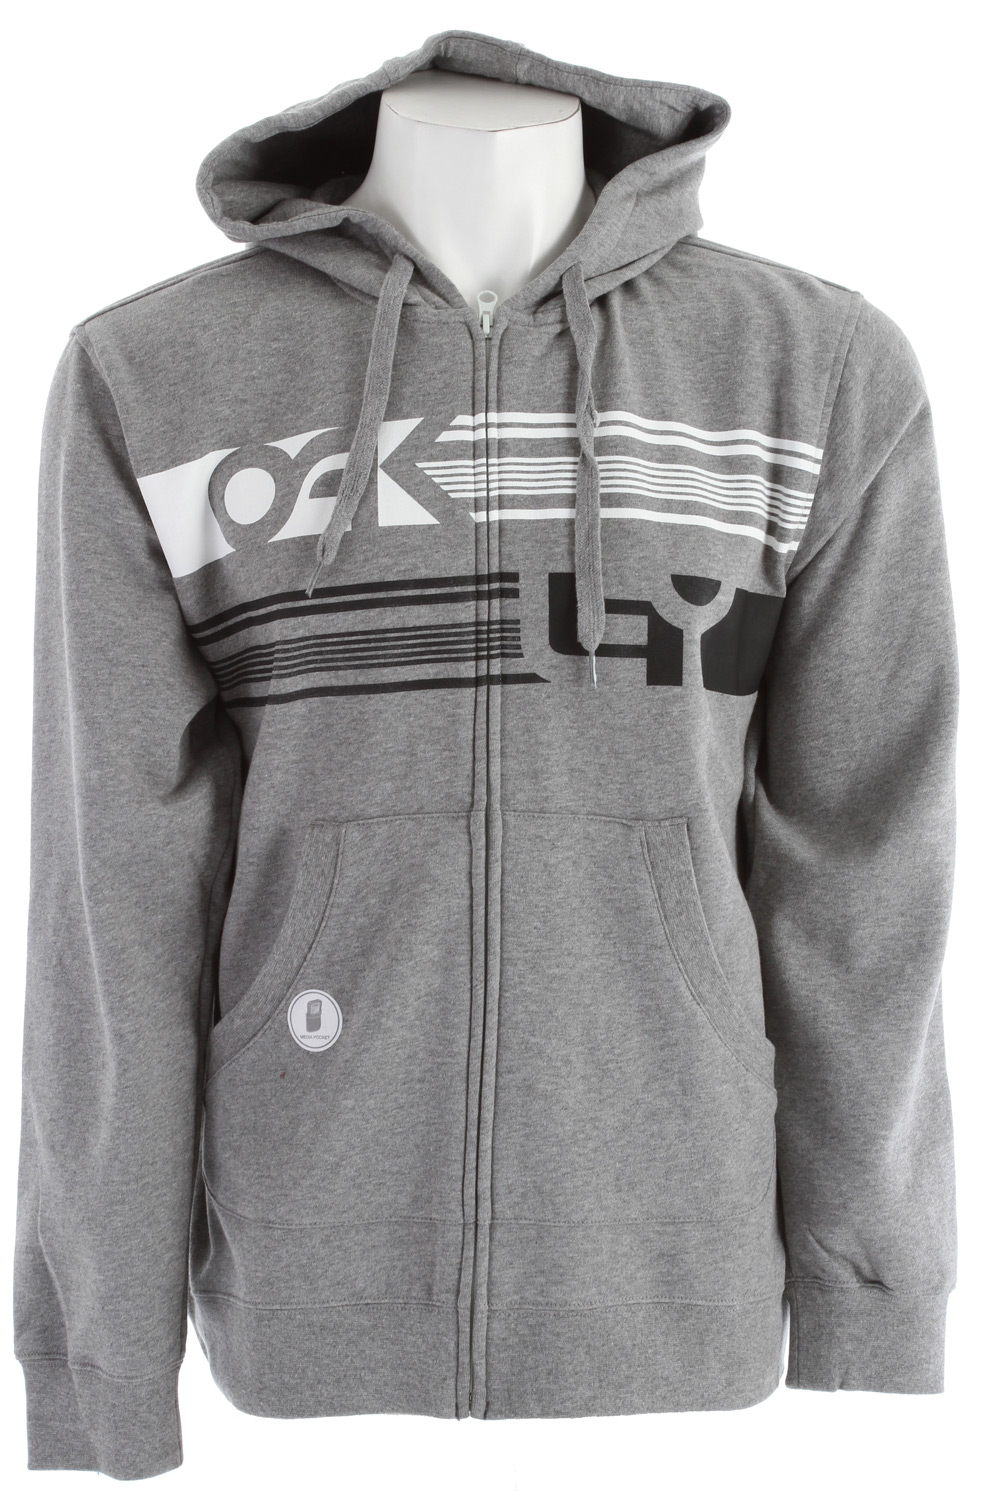 Full zip hoody with marsupial hand pockets and logo screenprint.Key Features of the Oakley Memorable Hoodie: 80% cotton, 20% polyester 240g - $34.95